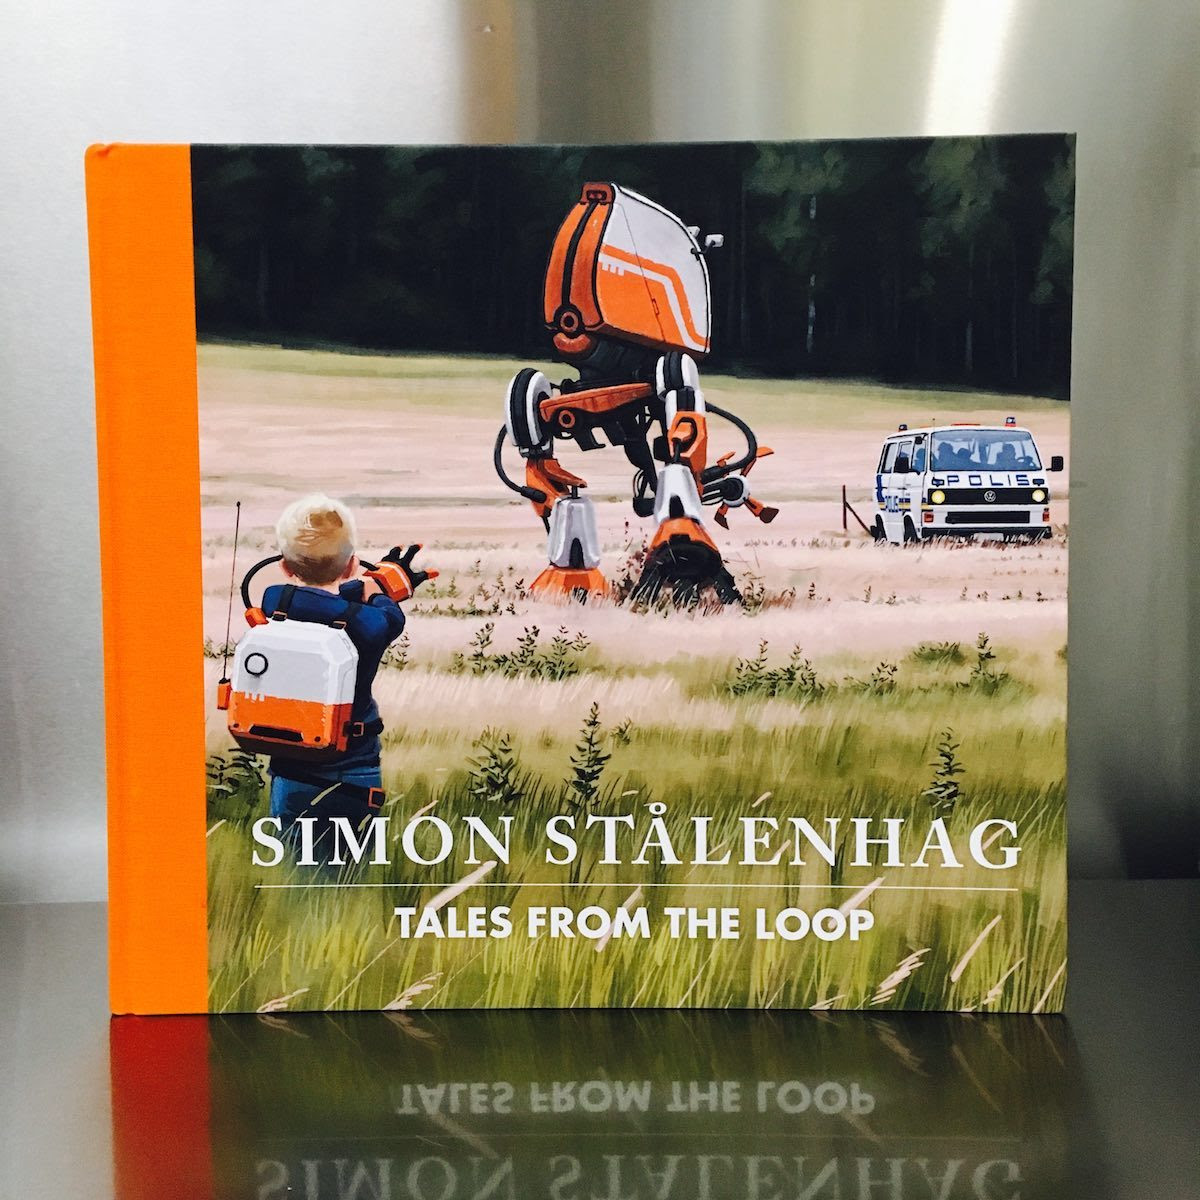 "Tales from the Loop – An eerie account of a physics research facility gone awry  Tales from the Loop  by Simon Stålenhag  Design Studio Press  2015, 128 pages, 10.1 x 11.2 x 0.7 inches  $33  Buy a copy on Amazon  Unfamiliar with sci-fi artist Simon Stålenhag, I was sucked into his eerie dystopian history the instant I cracked open Tales from the Loop. His hyper-real digital paintings depict beautiful Swedish country towns where snow falls in the winter and children play in nature. But each of these pastoral scenes are jarring, with intrusive machines, robots, discarded equipment, and power lines upstaging the otherwise serene landscape.  The book explains that these paintings were inspired by childhood memories of the author, who grew up in a large area of Sweden that housed an underground experimental physics research facility known as The Loop. Alongside each painting is a short essay from the author's memory. For instance, the three cooling towers in the photo above were built to release heat from the core of the Loop. The towers, which ""started like a deep vibration in the ground that slowly rose to three horn-like blasts,"" remind Stålenhag of a miserable day he had with a boy named Ossian, who had lured him to his house to play Crash Test Dummies, but ended up bullying him with the help of his brother until Stålenhag went home in tears.  Each painting is accompanied by one of these short yet captivating stories, and their detailed, relatable quality had me going. As I read about Stålenhag and his best friend Olof sneaking off with a boat on a nice summer day to a disturbing machine-littered swimming pond, I kept thinking, ""I must go online and research the Loop! How could I have never heard about this creepy place?"" Then I quickly got to the robots. Huge dinosaur and prehistoric animal robots. And towering two and four-legged machine robots, crushing everything in their paths. Suddenly, with a ""Wait a minute!"" moment, I knew I'd been had. The same way I was duped when I saw The Blair Witch Project and thought, at first, that it was a real documentary. But my gullibility doesn't bother me – what a fun treat it is to be swept into a horrific alternative reality, only to find out it's masterful fiction.    Stalenhag's Tales from the Loop is striking, creepy, and captivating. It's both an intriguing coffee table book and an engaging novel of sorts. And for me, it was an exciting ride.  – Carla Sinclair  February 26, 2016"